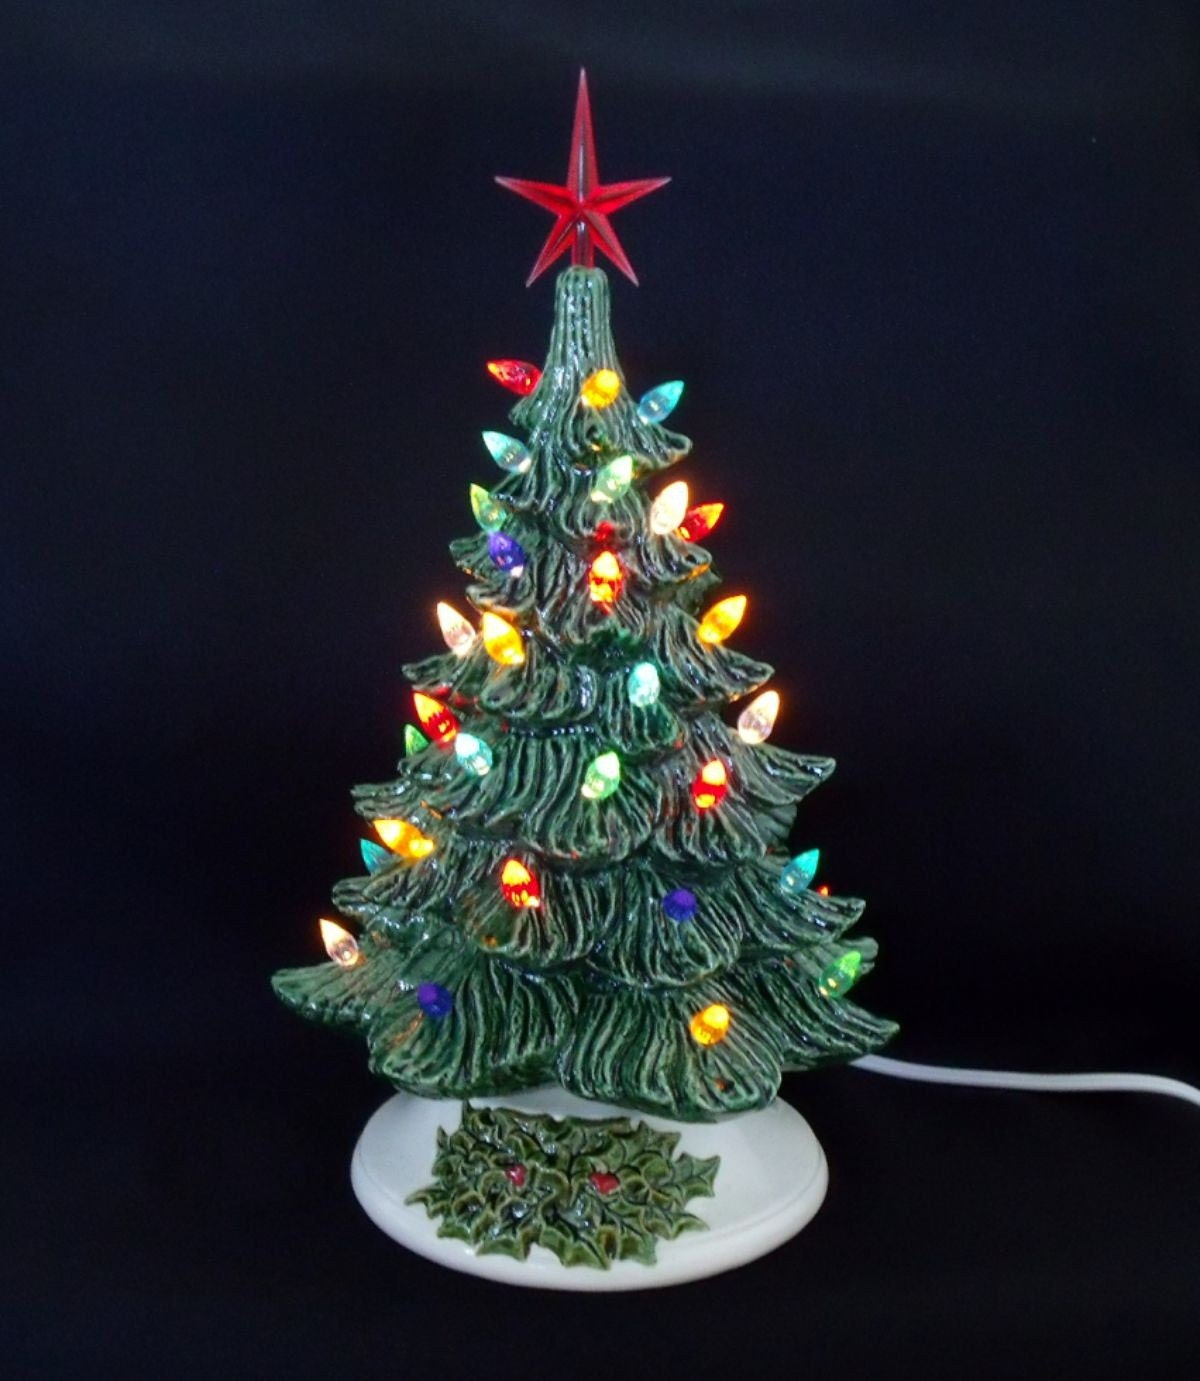 Lighted Ceramic Christmas Tree 12 Inches